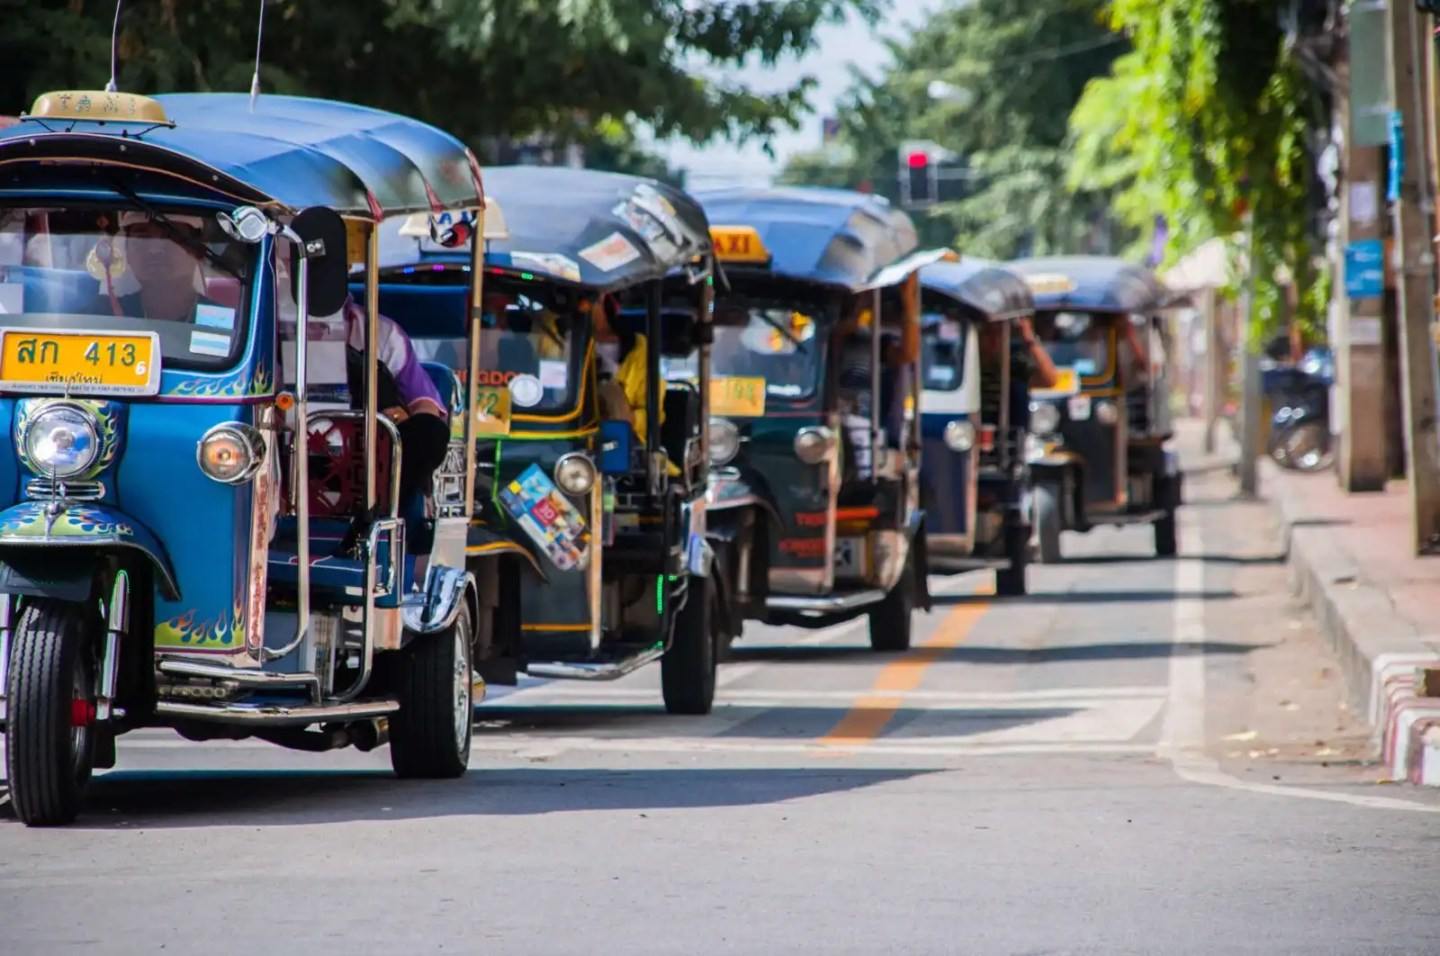 Picture of tuk tuk vehicles in Chiang Mai Thailand